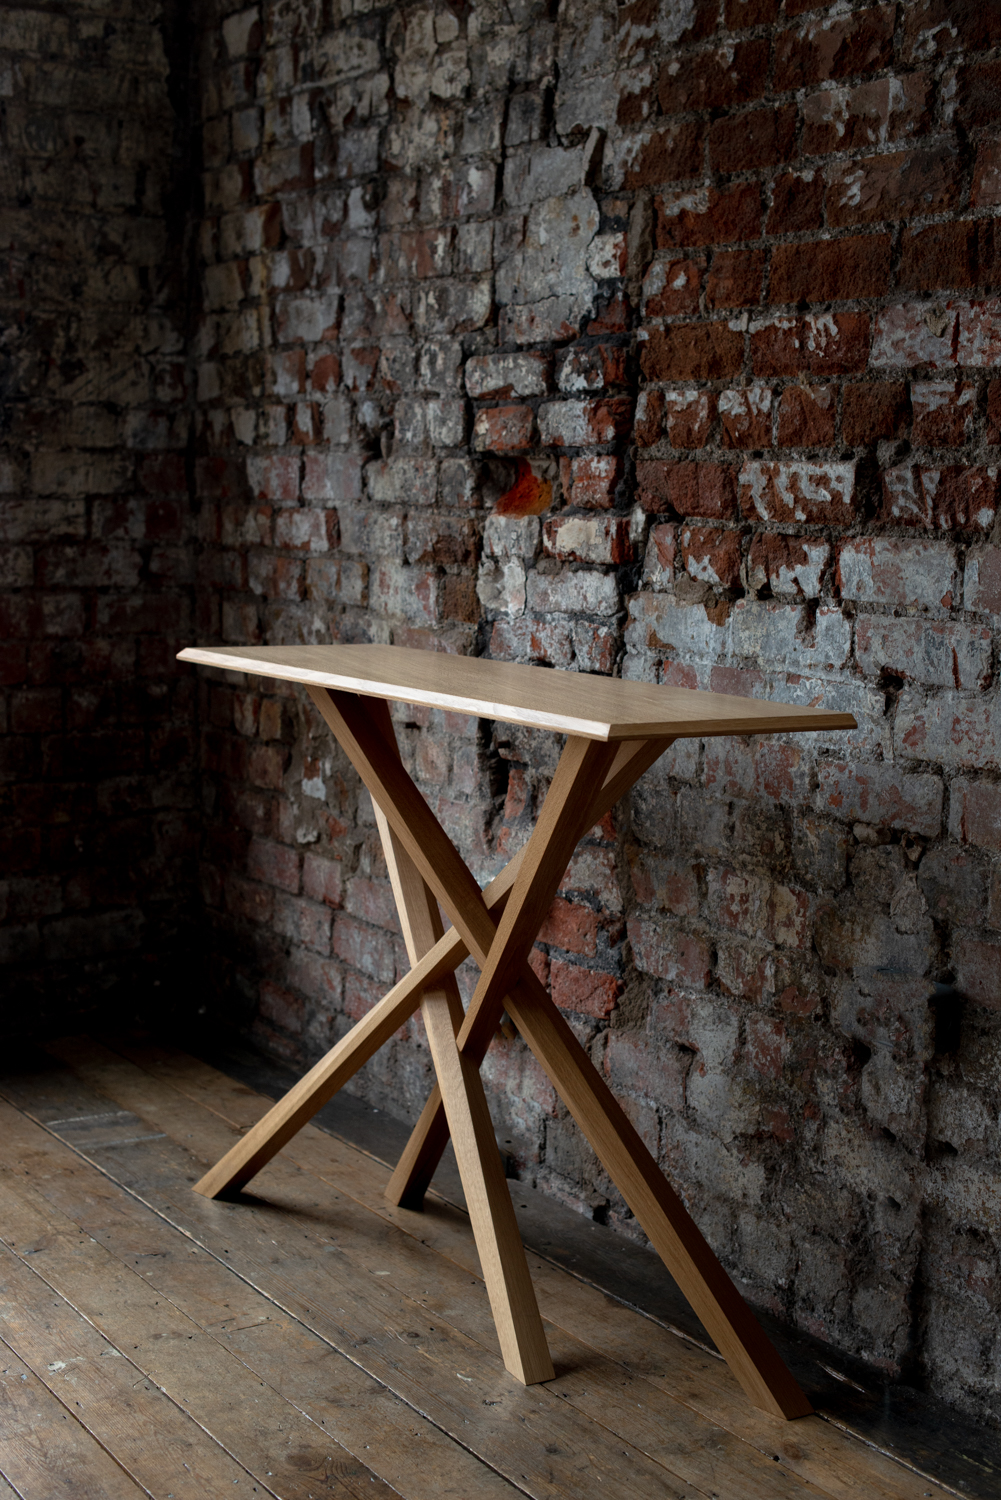 Photoshoot & location The Forge_Bristol_Furniture Maker_Anselm_Fraser-16.jpg